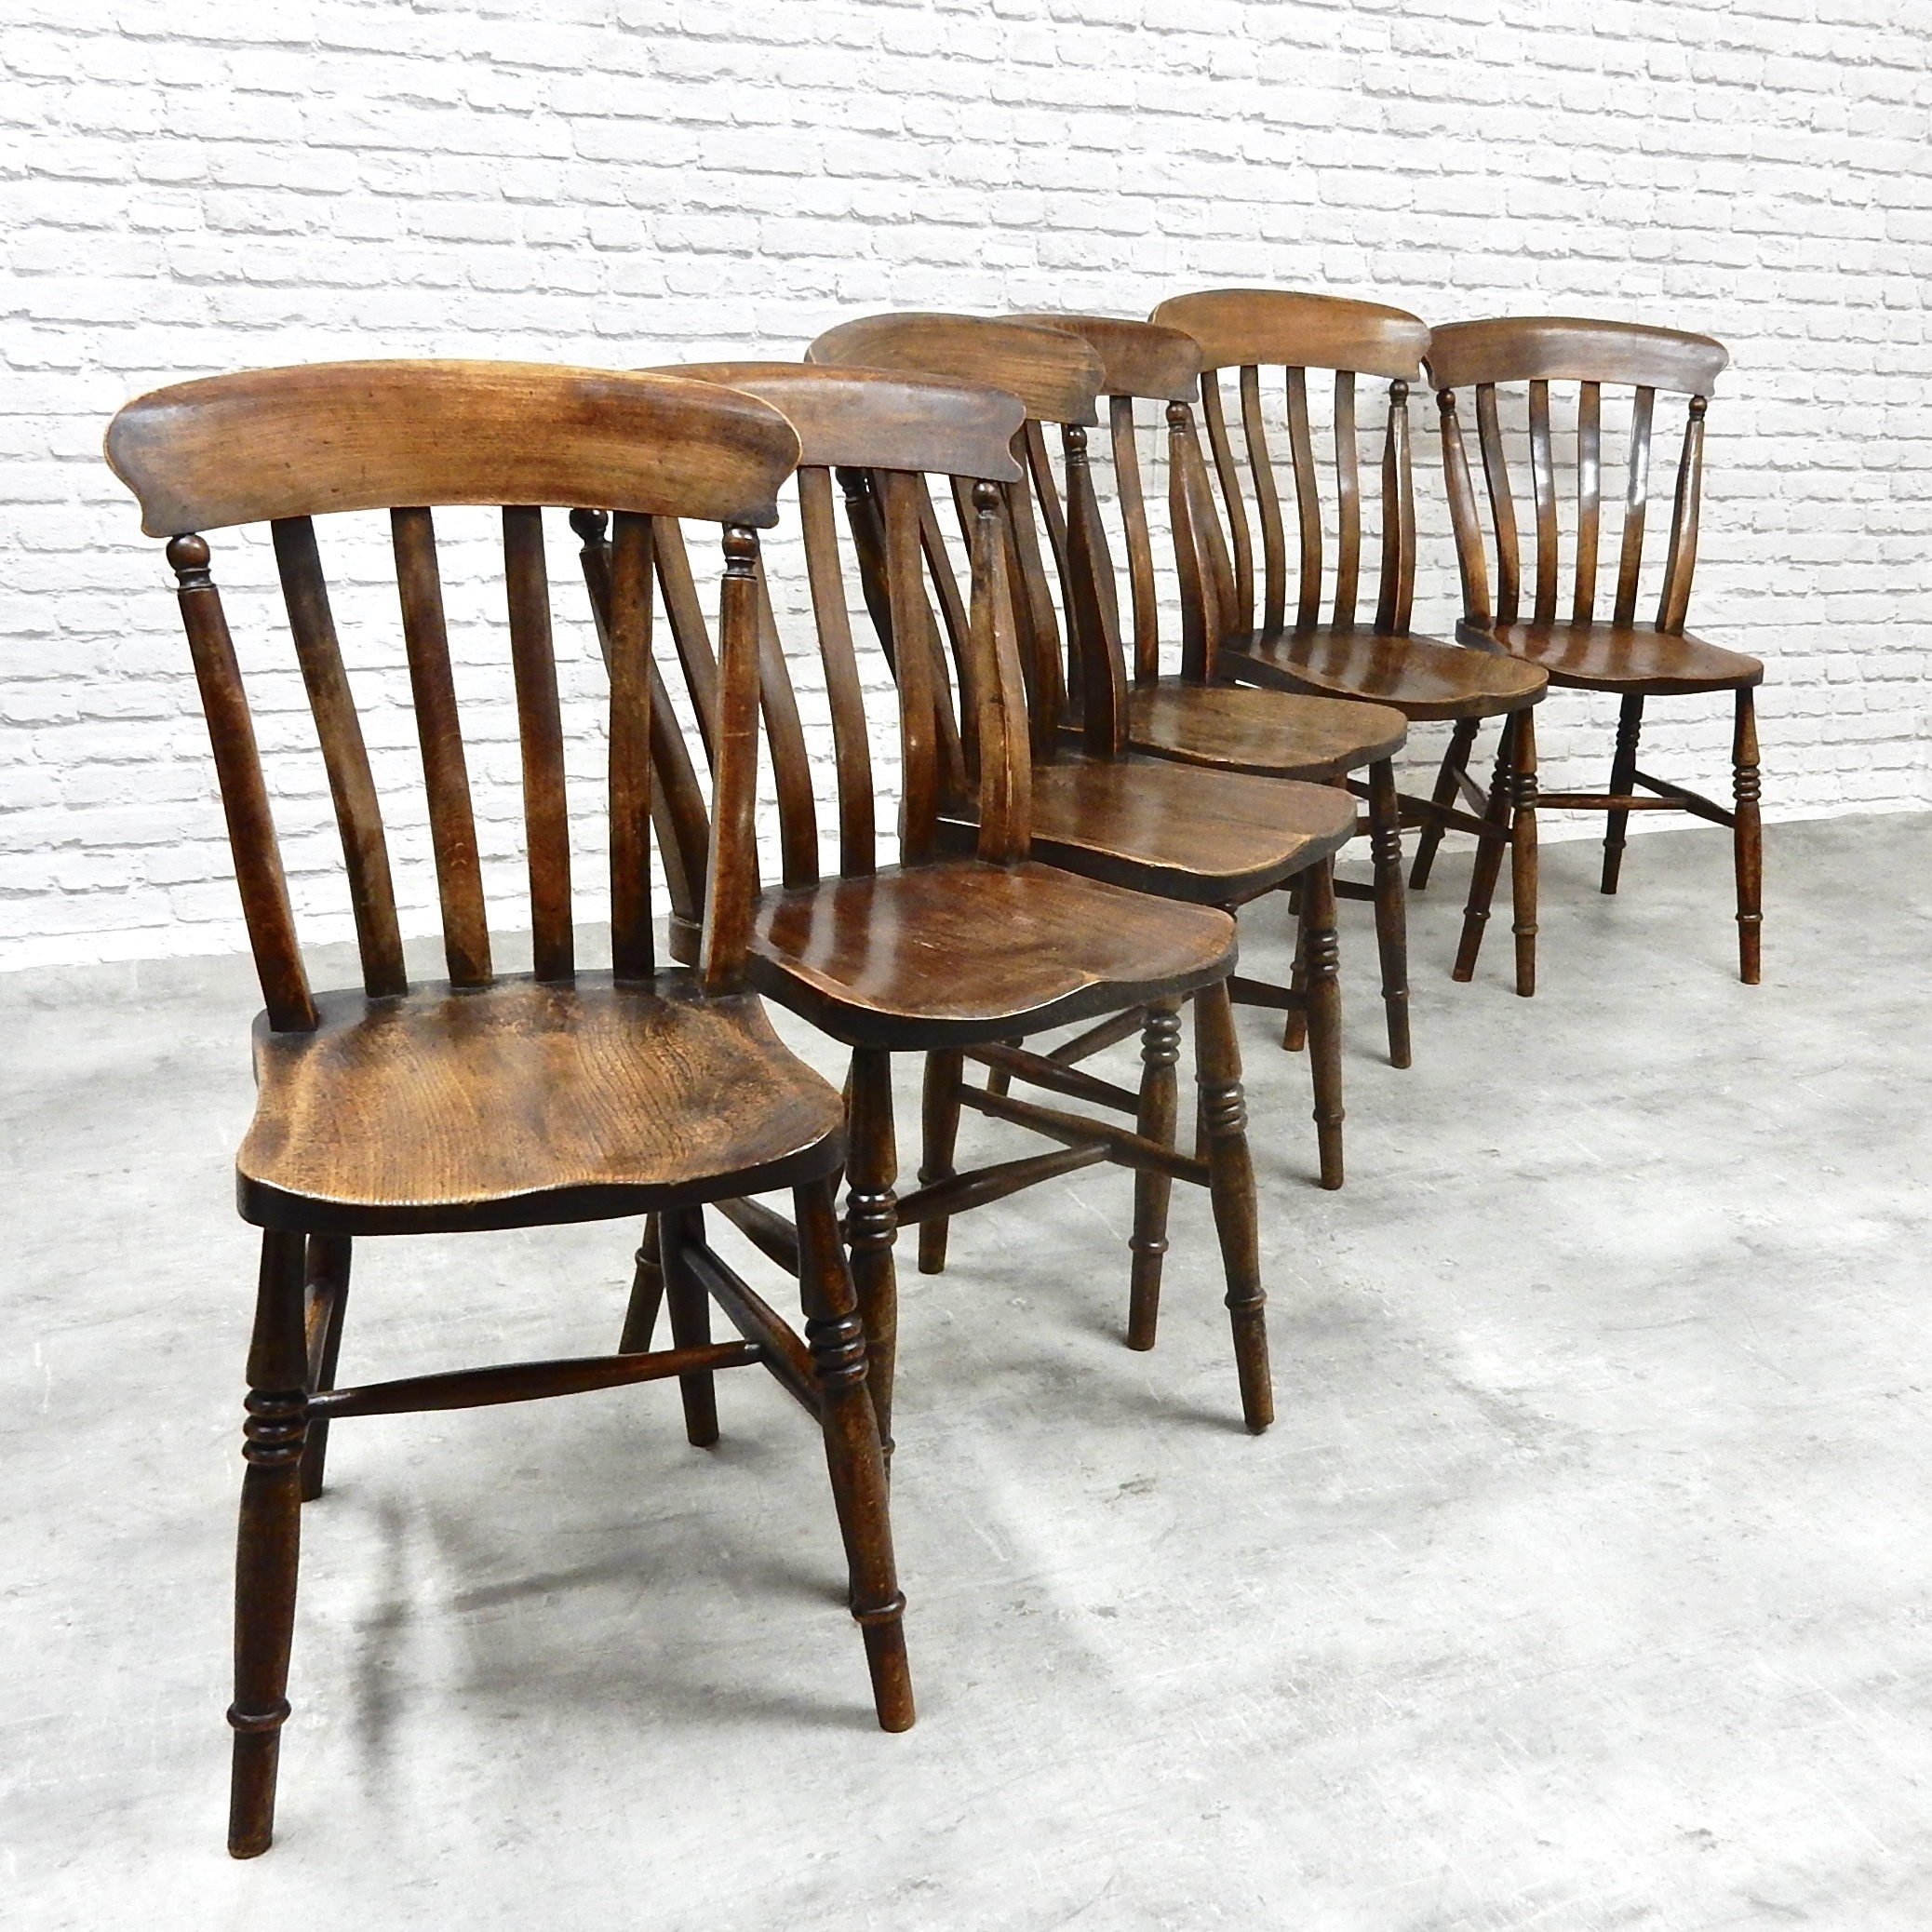 Kitchen Chairs Ireland: Set Of 6 Antique Country Kitchen Chairs